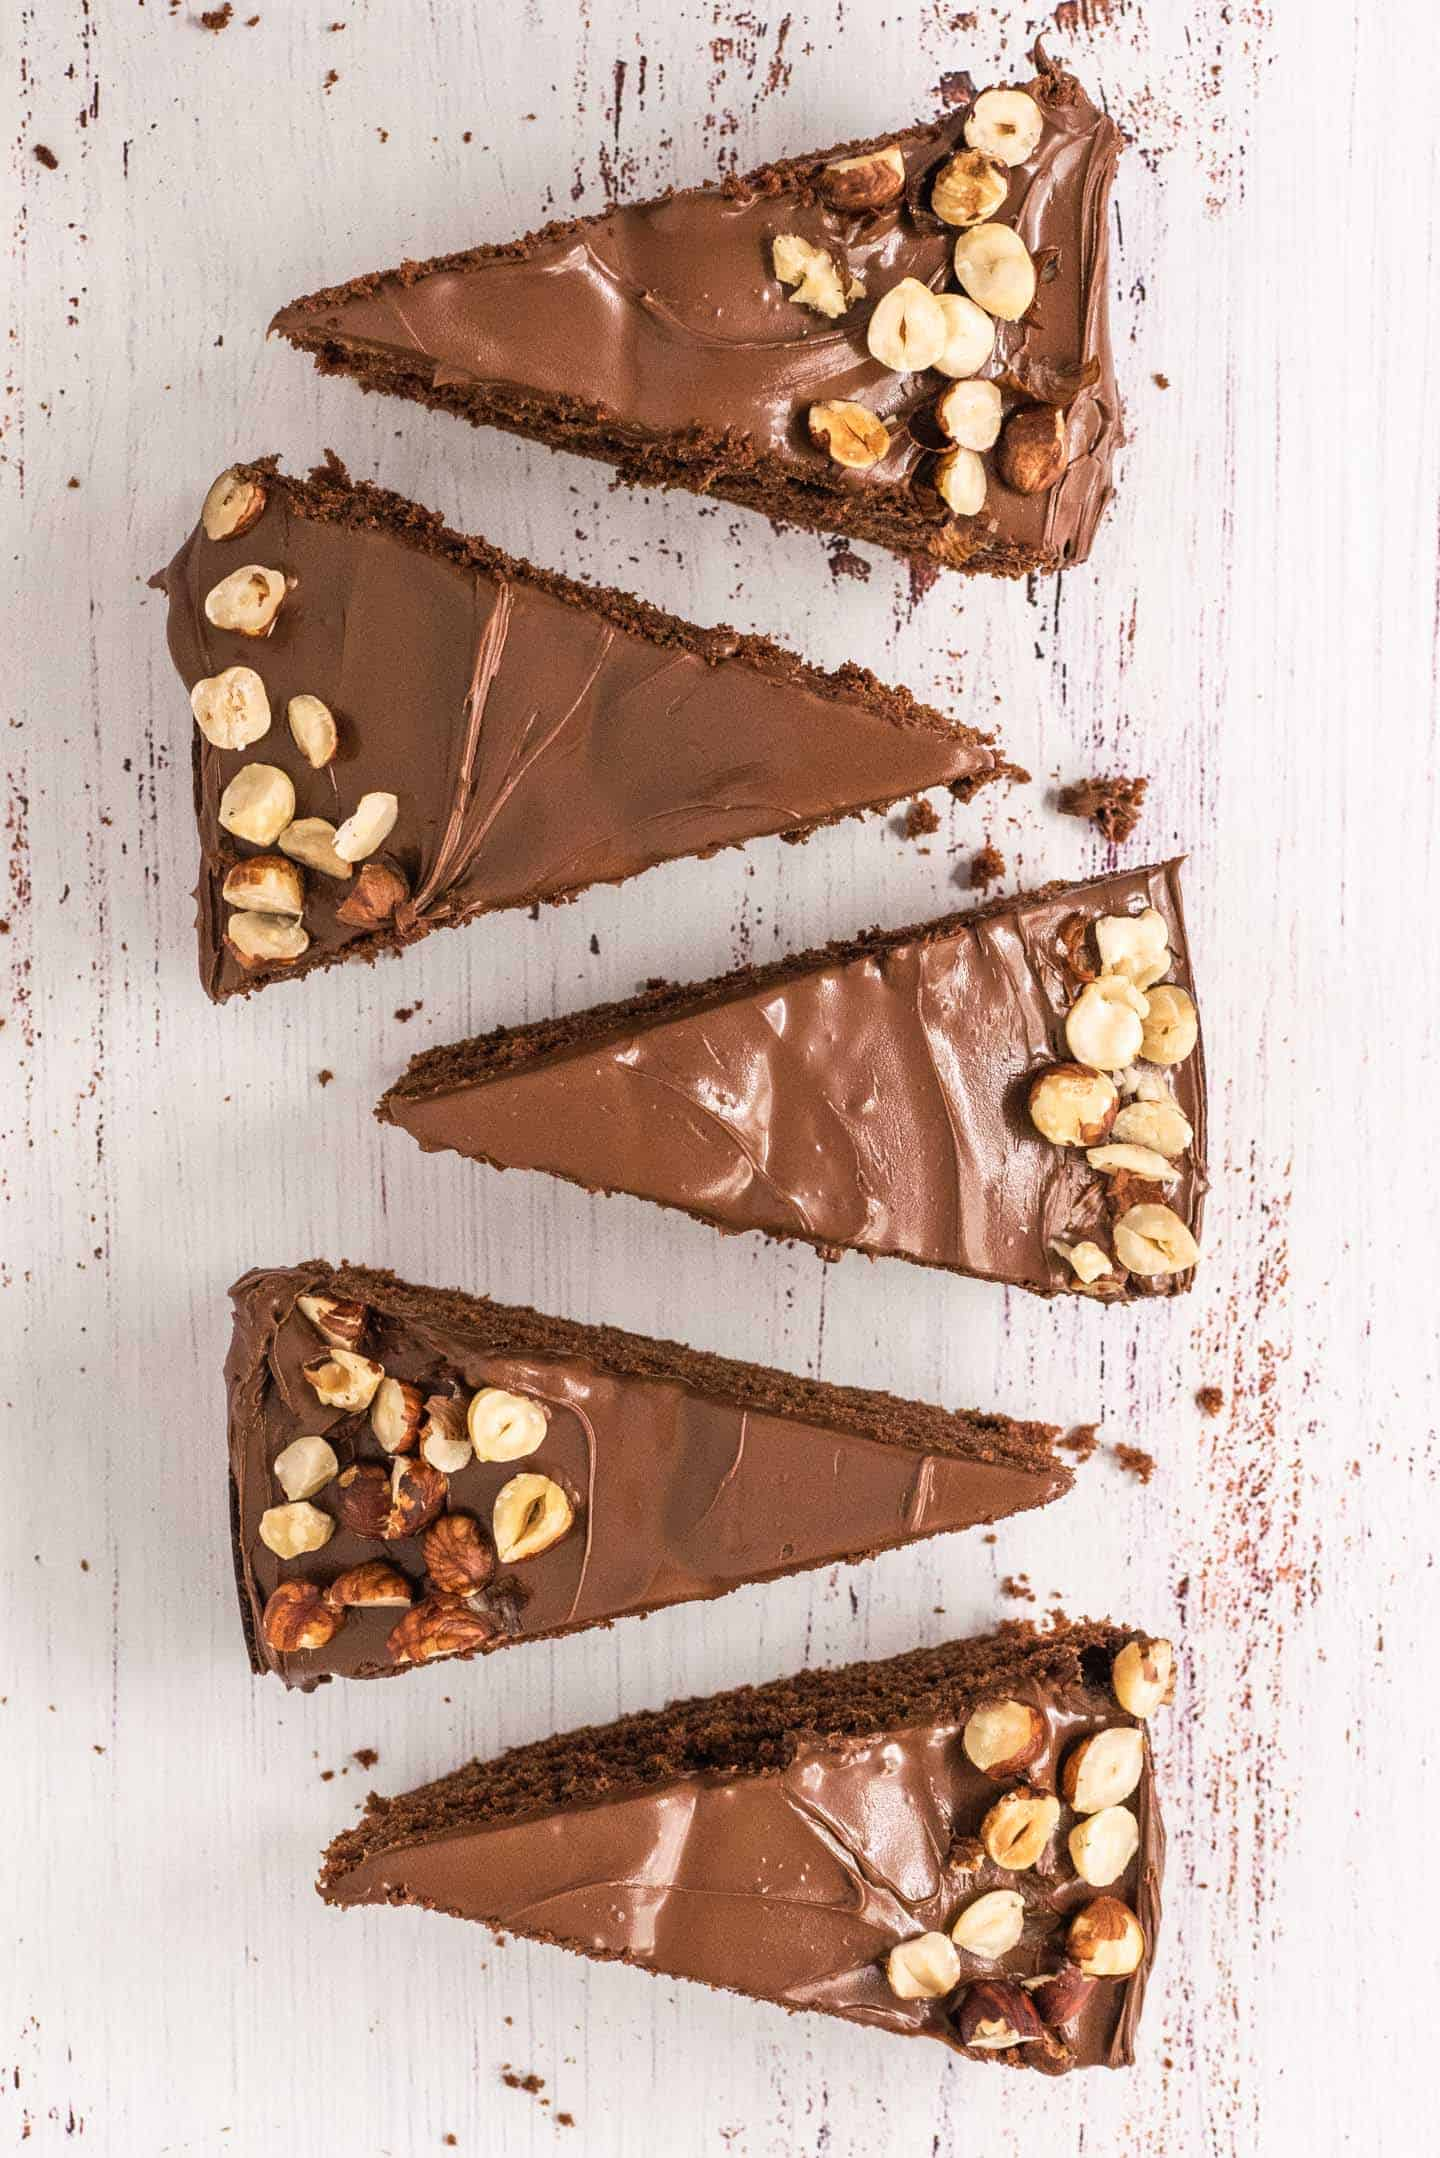 Mocha Cake with Nutella and roasted hazelnuts